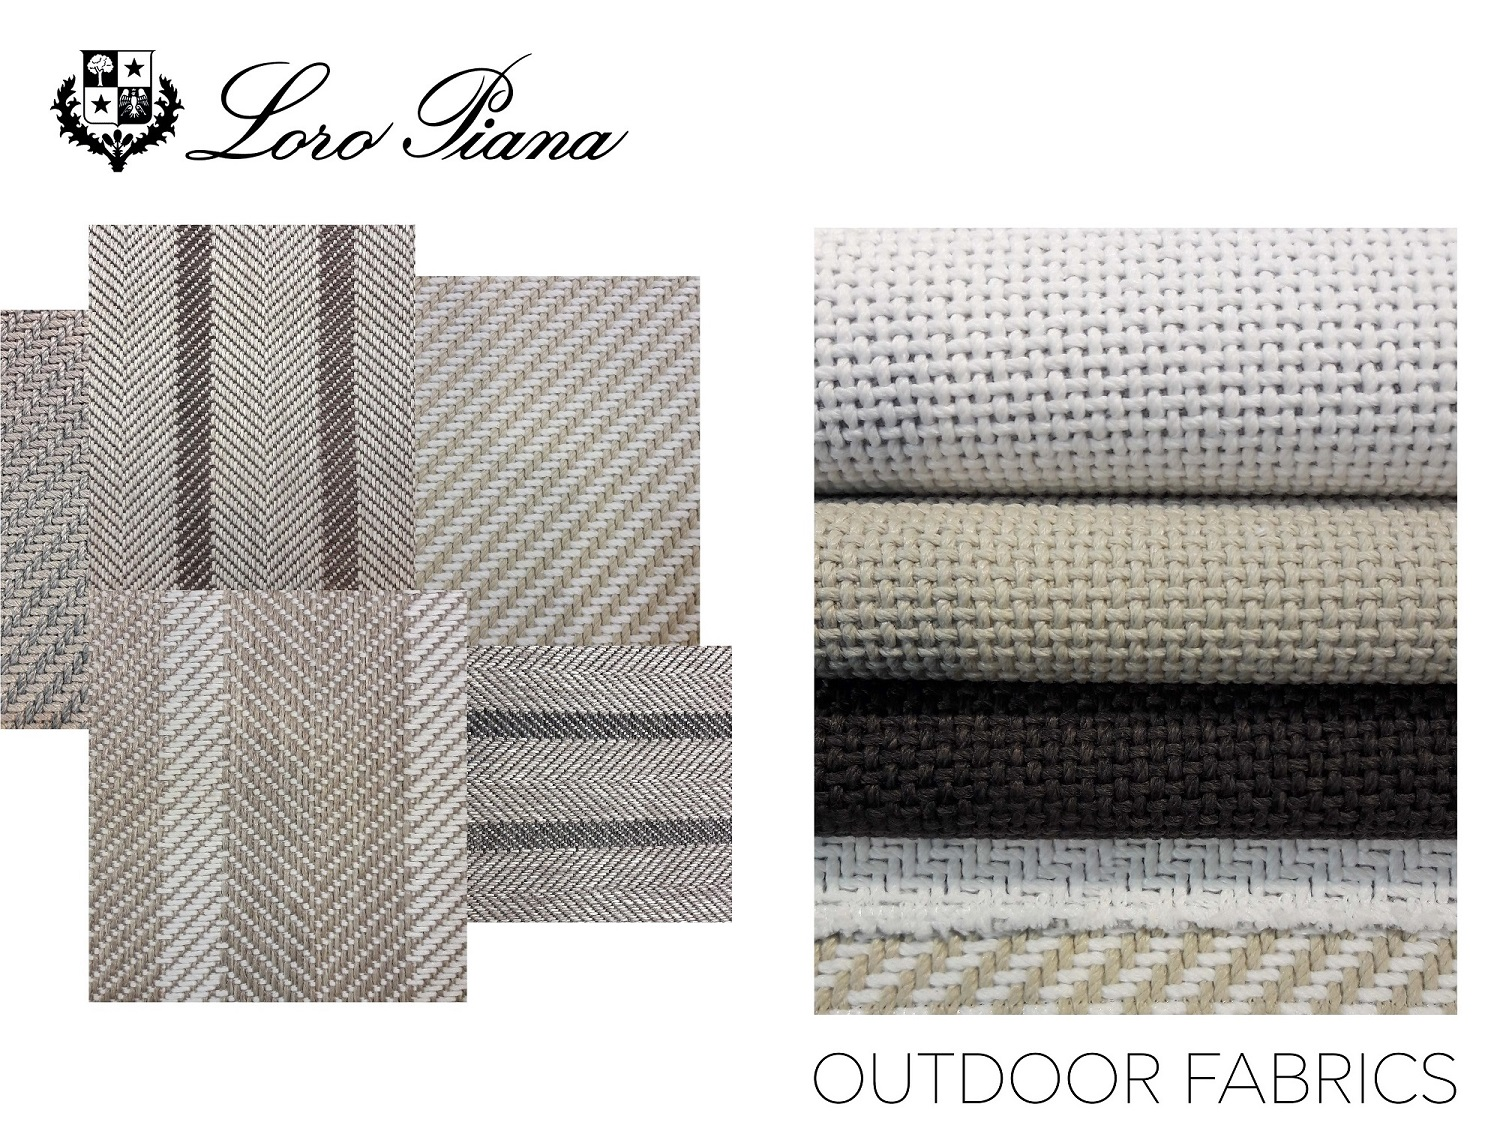 LORO PIANA-Outdoor Fabrics-2018-CRIPE